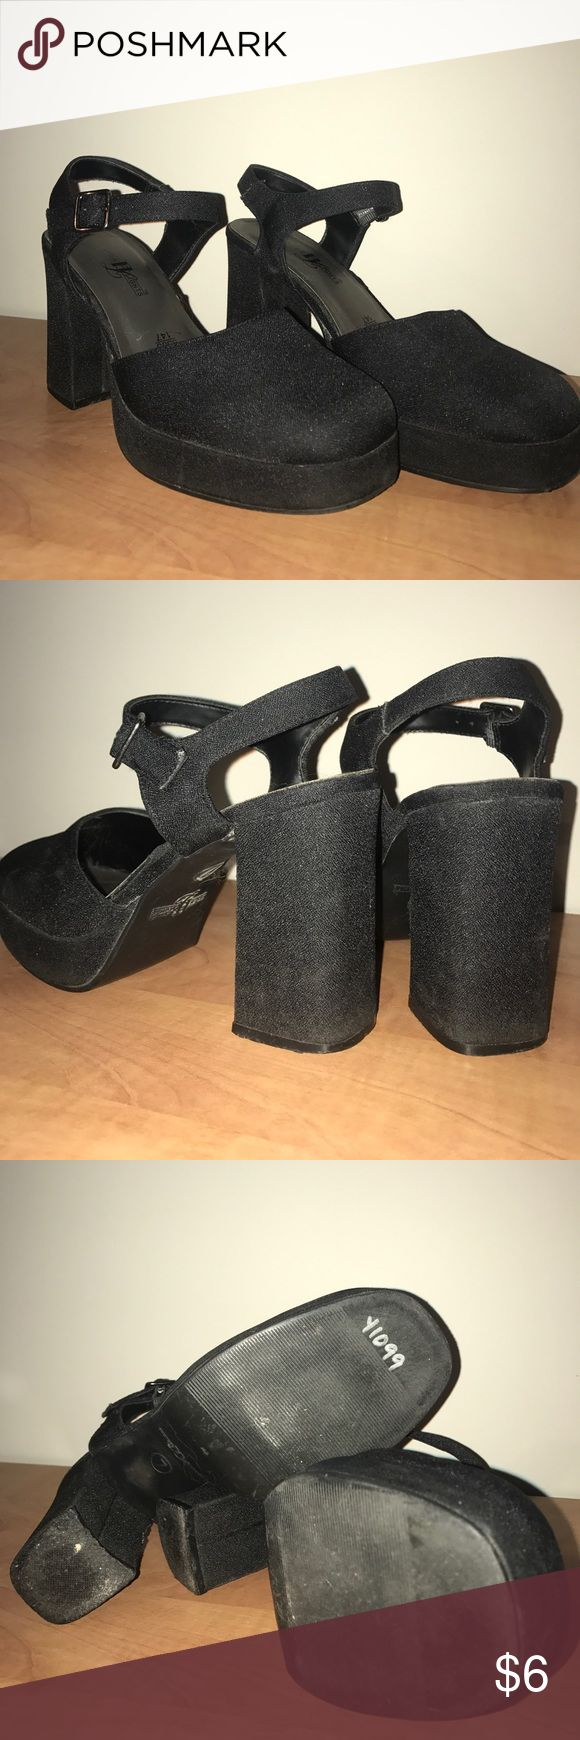 Super comfy, vintage ankle strap chunky heels! Extremely comfortable, broken in heels (just a tad too big for me). Pull off that 80's look you're going for--which is so hot and trendy right now. Thick heel makes them easy to walk in and the ankle strap keeps you secure. Black synthetic fabric makes them easy to clean! Win, win, win. High Lights Shoes Heels